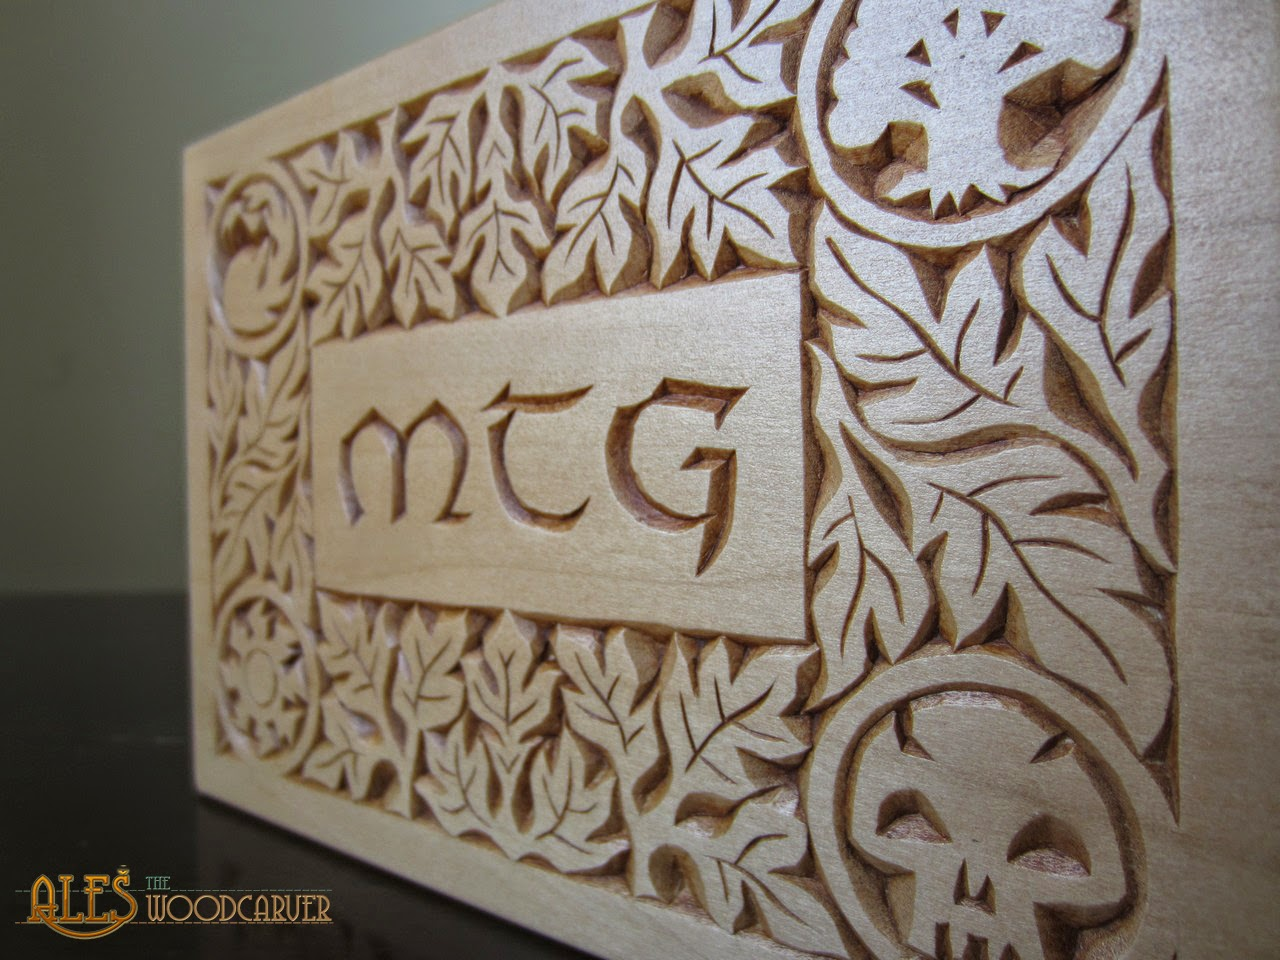 Ales the woodcarver magic the gathering commander deck boxes i avoided the blue mana symbol as i wanted to have the symbols only in corners i find the blue symbol the least appealing for chip carving so it had to go biocorpaavc